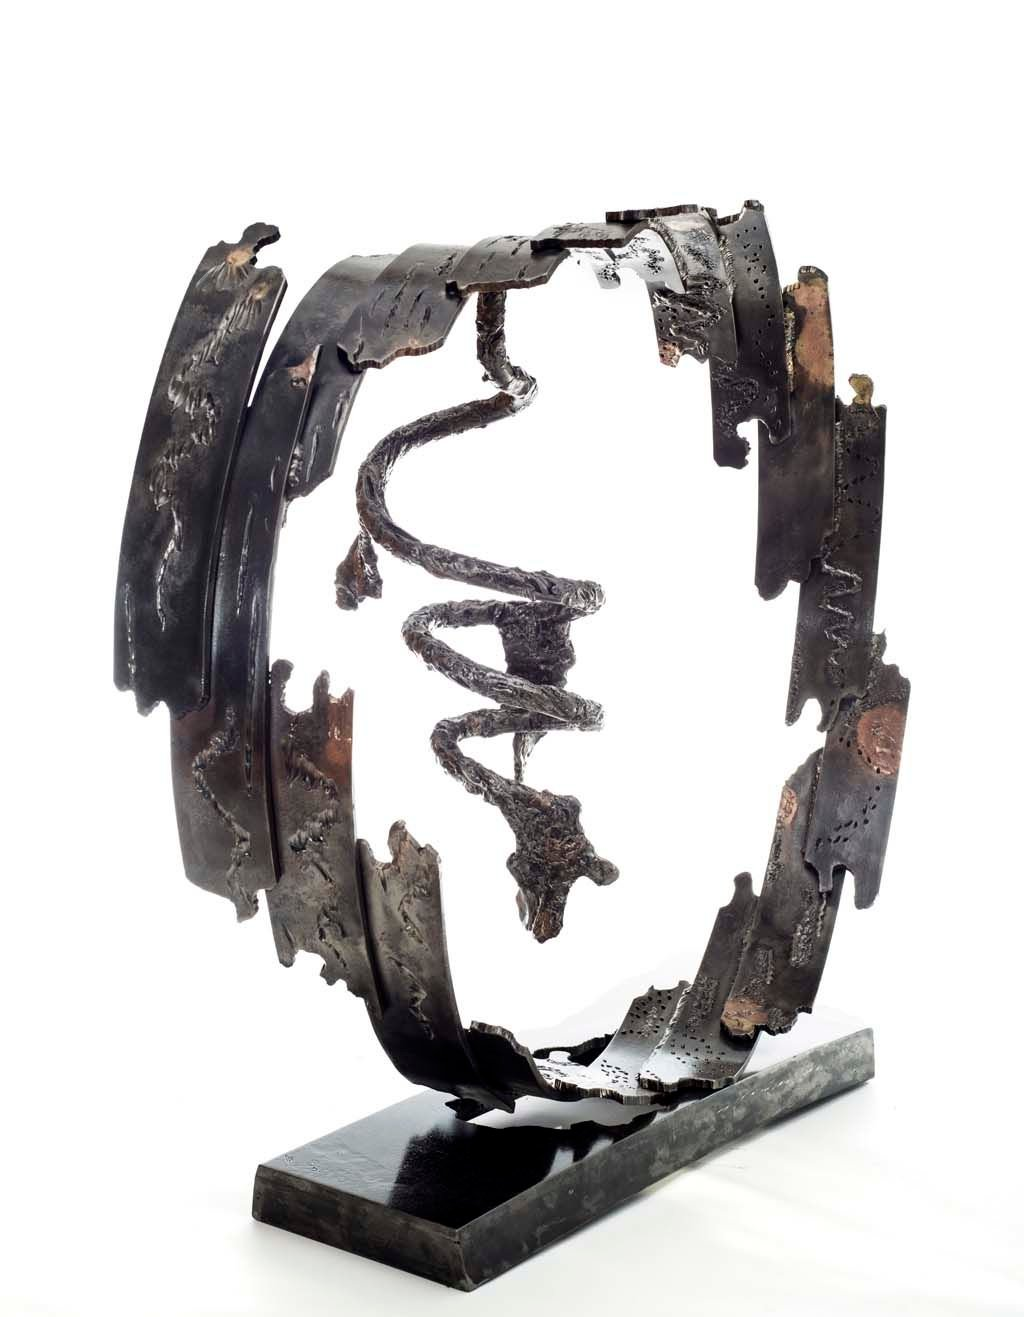 Insights VII | 2014 | Iron & brass sculpture | 85x96x40 cm | Rami Ater